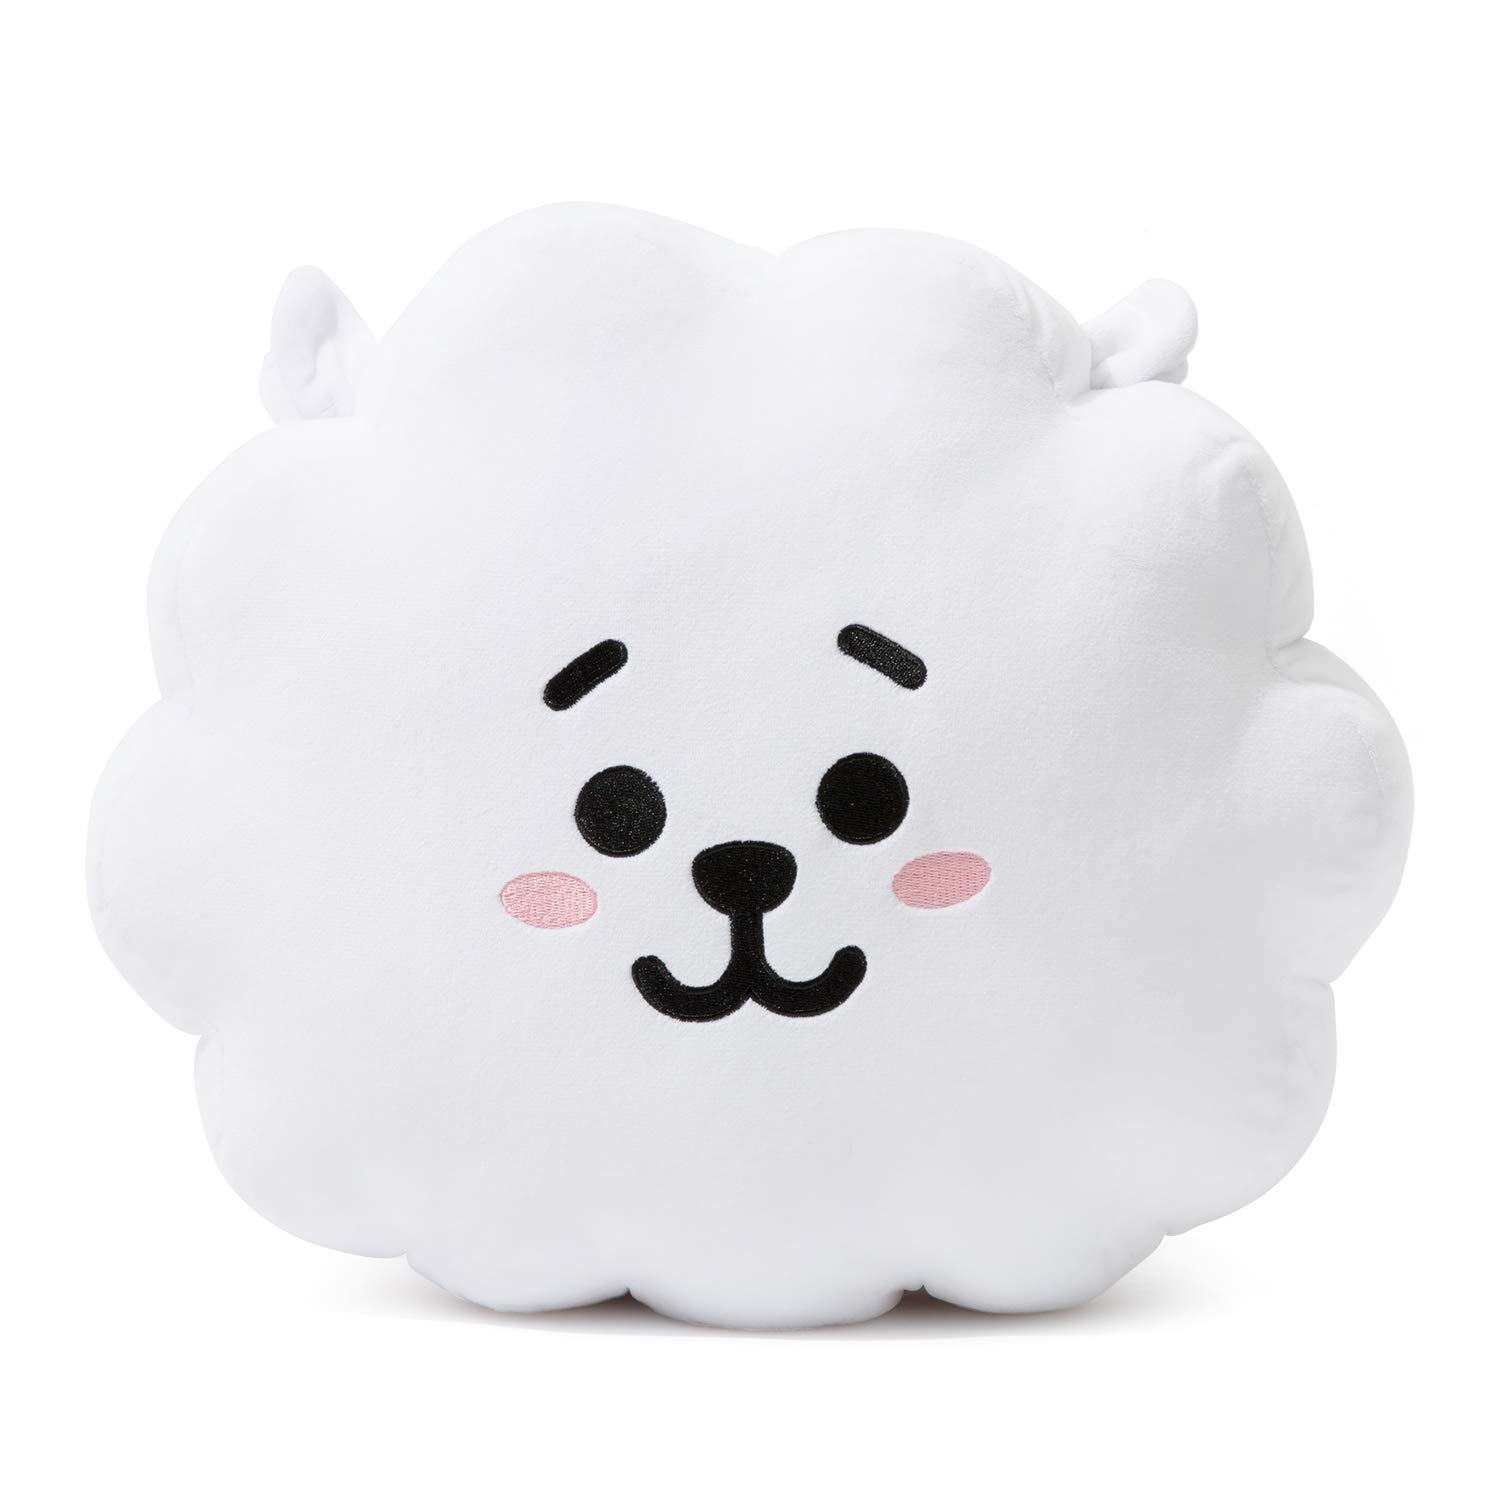 BT21 Official Merchandise by Line Friends - RJ Decorative Throw Pillows Cushion, 11 Inch by BT21